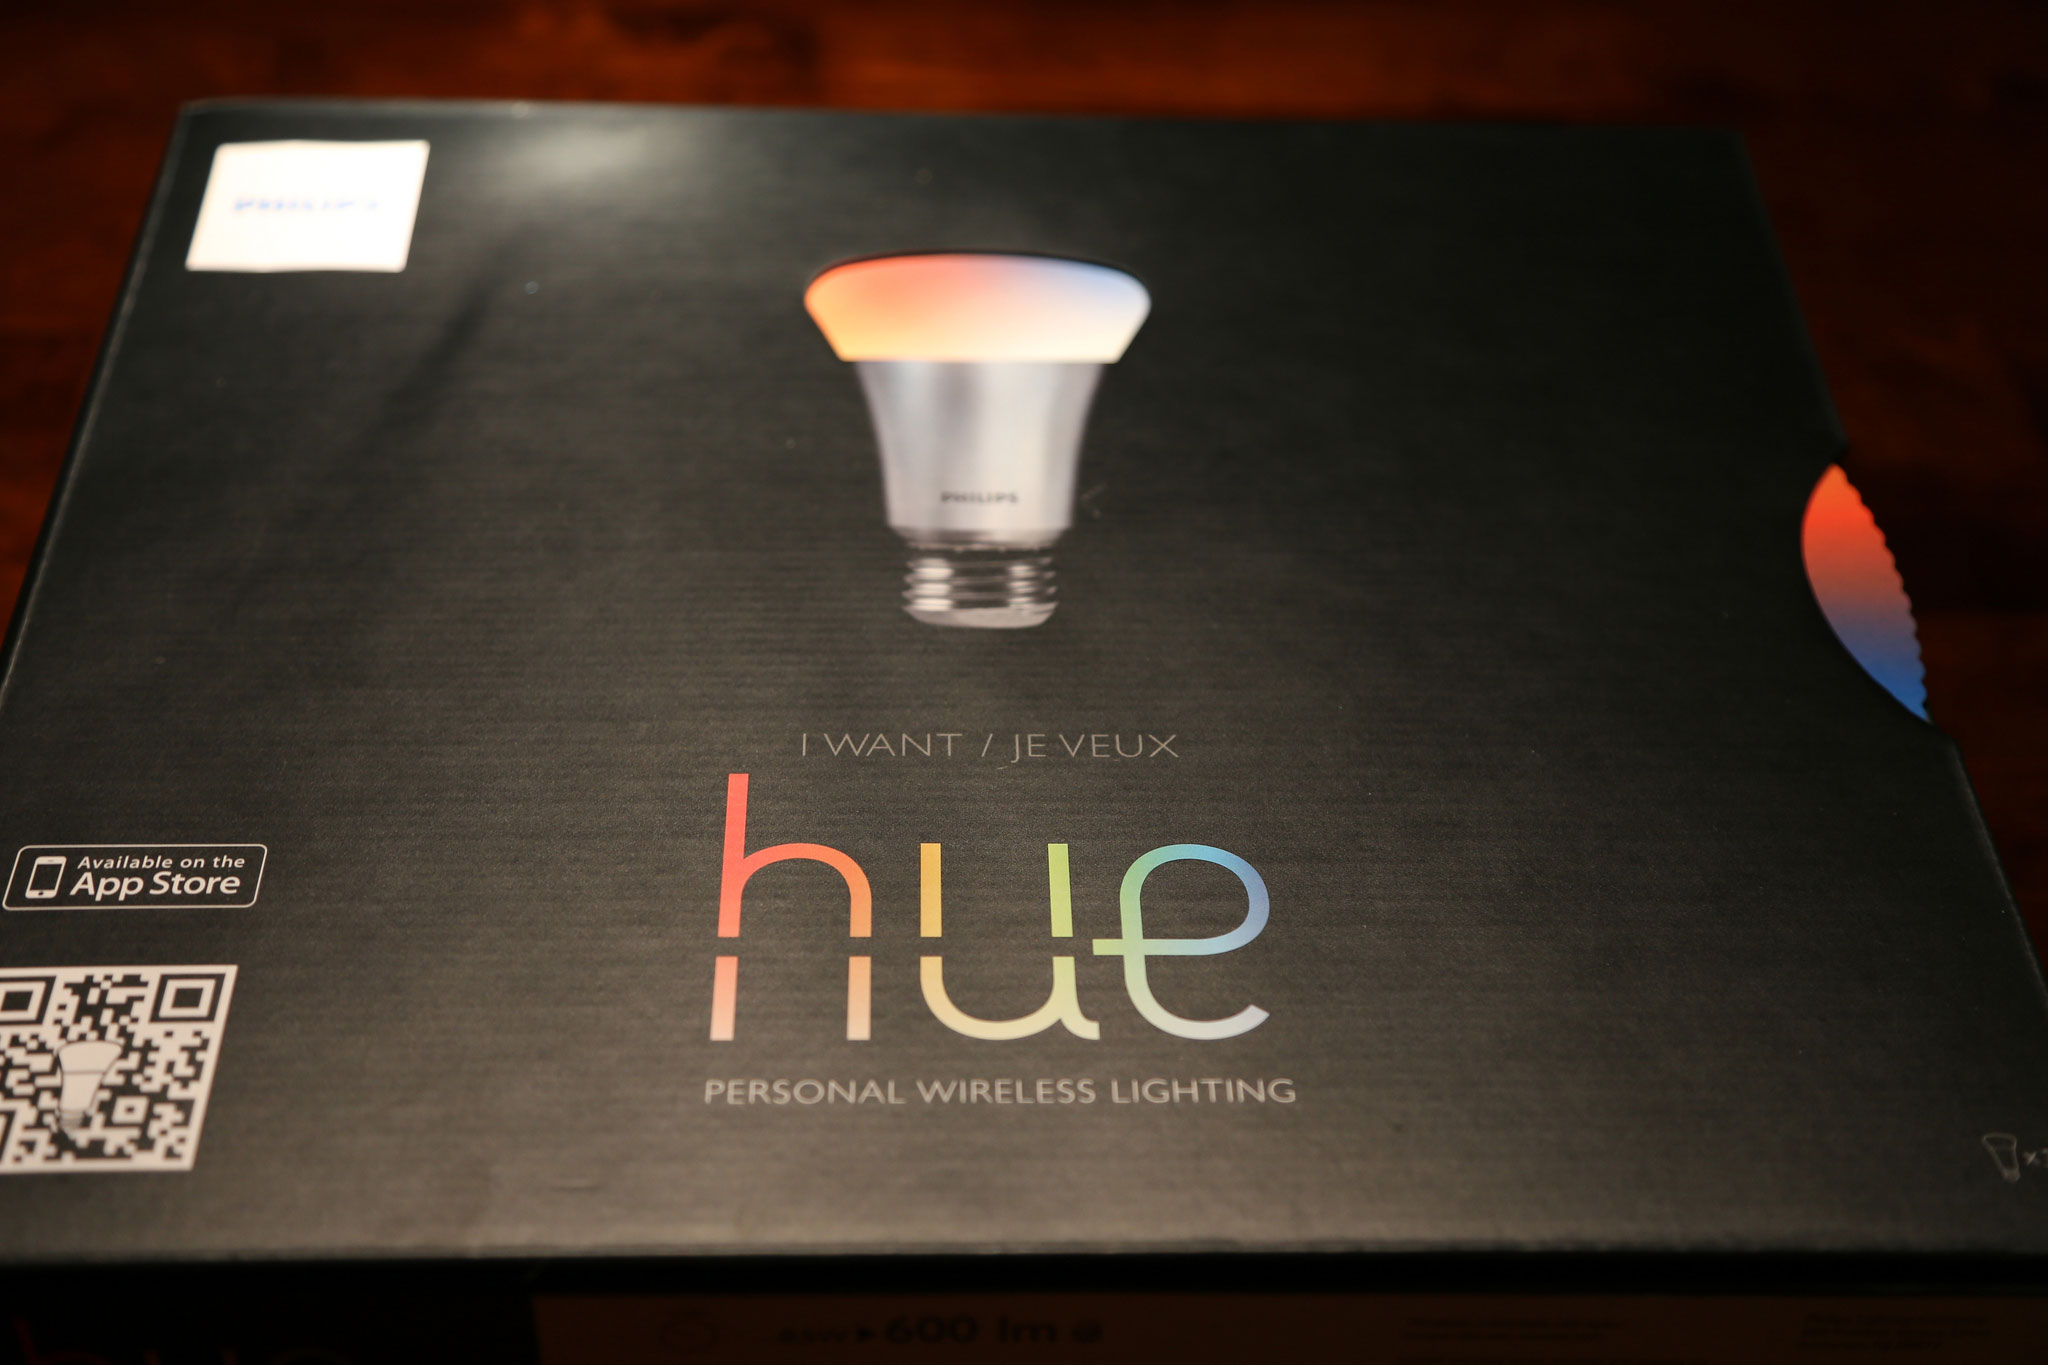 Philips Hue Automated Home Lighting Gets Colorful